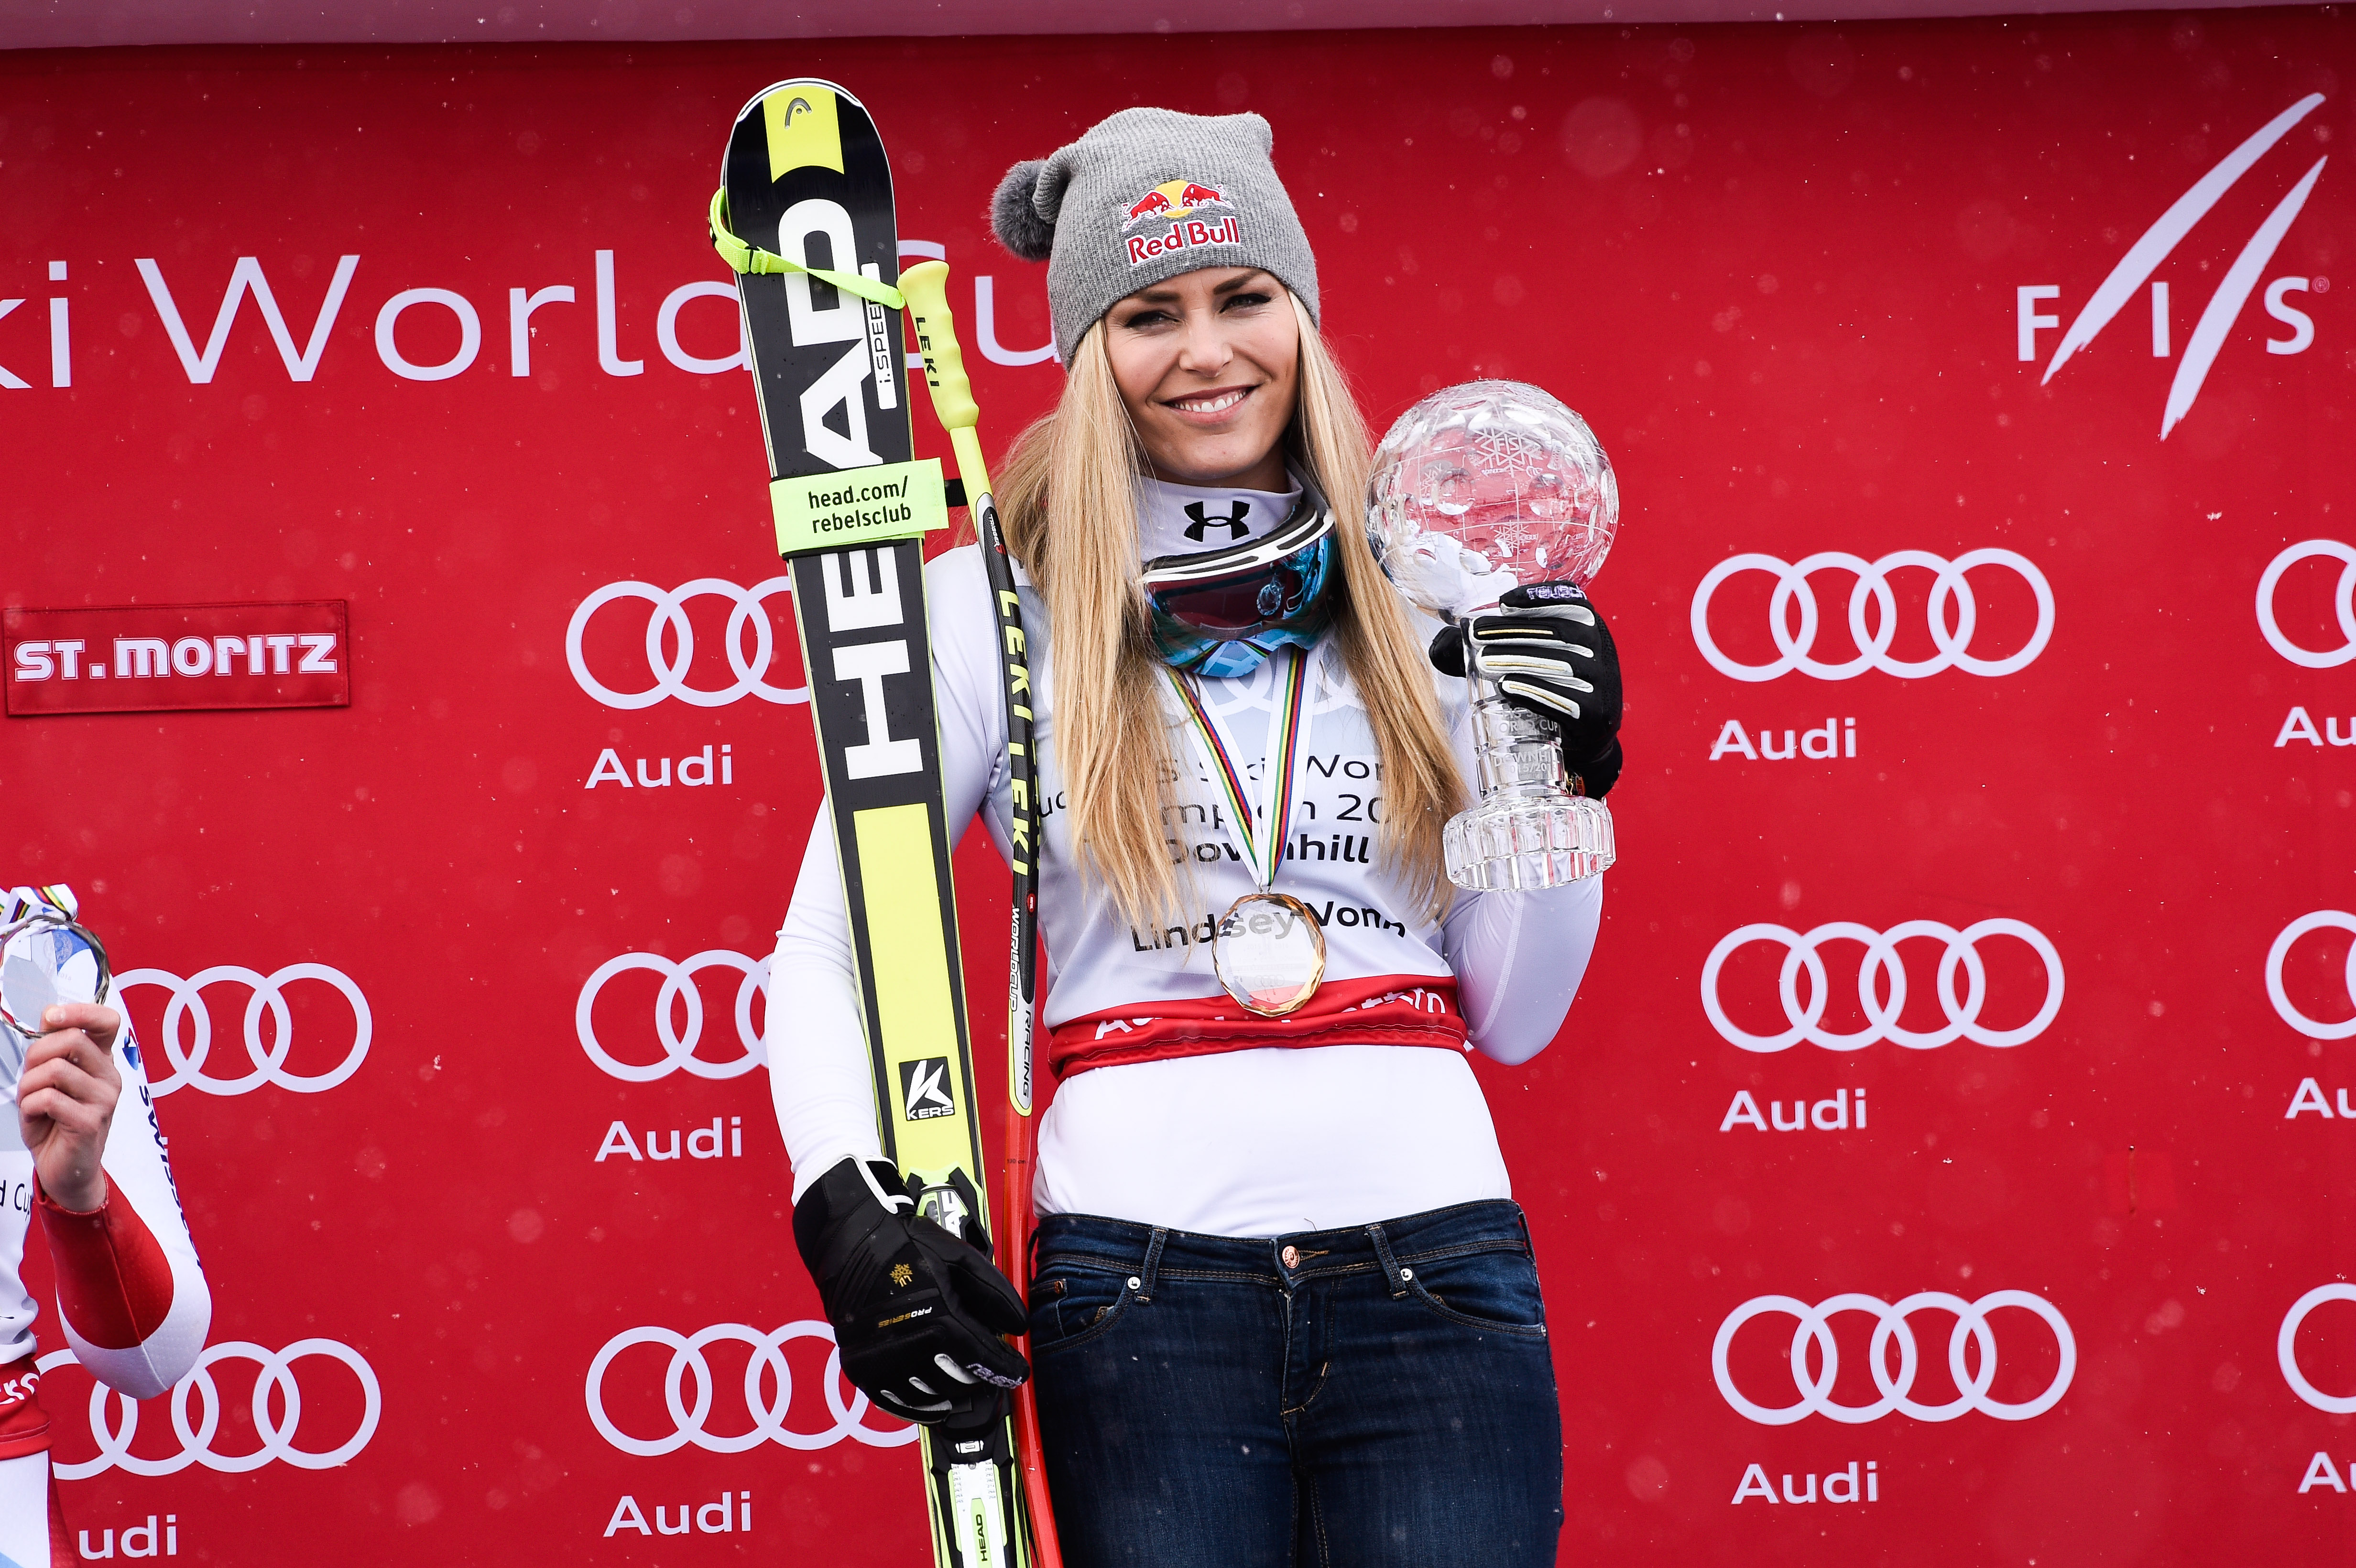 Lindsey Vonn of the USA wins the downhill crystal globe during the Audi FIS Alpine Ski World Cup Finals Men's and Women's Downhill on March 16, 2016 in St. Moritz, Switzerland.